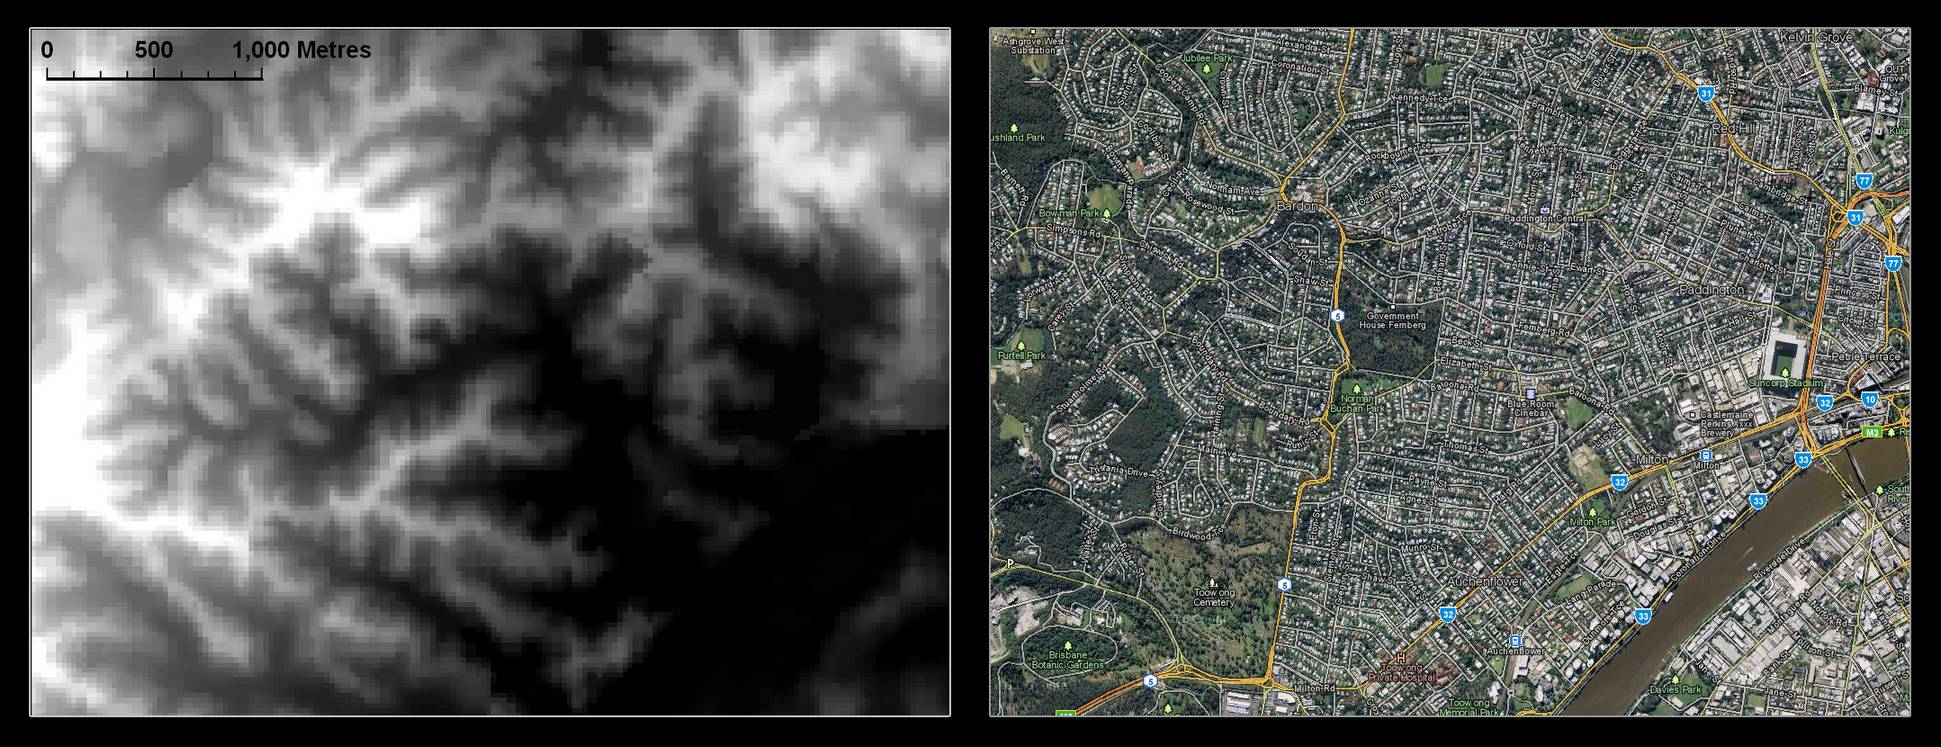 The digital elevation model (DEM) of the Western Creek area, shown beside an aerial image from Google Maps.